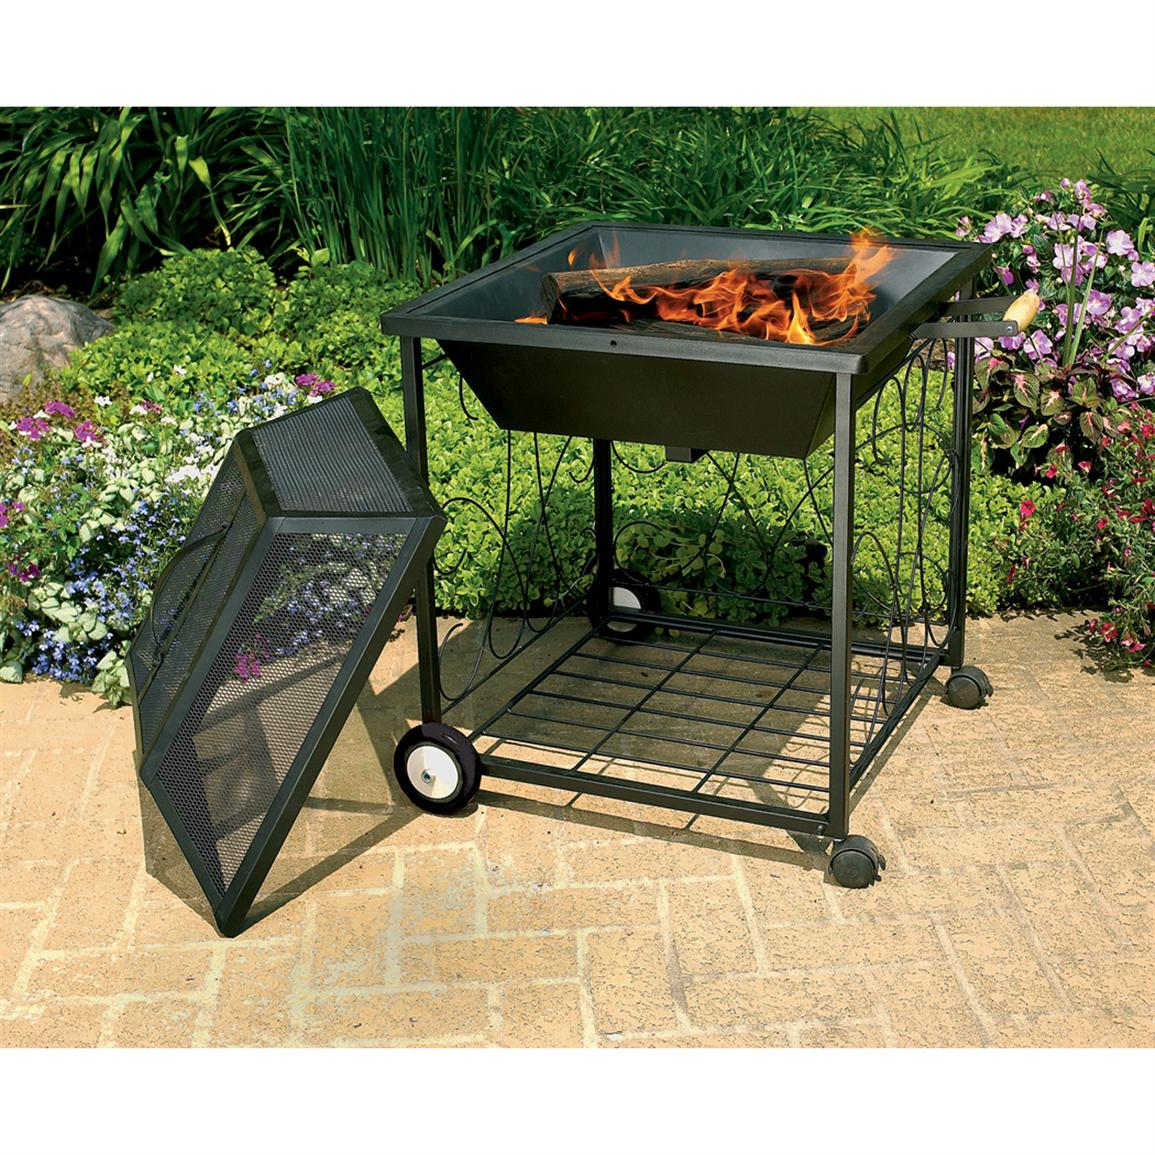 Portable Outdoor Fire Pit With Wheels Fireplace Design Ideas